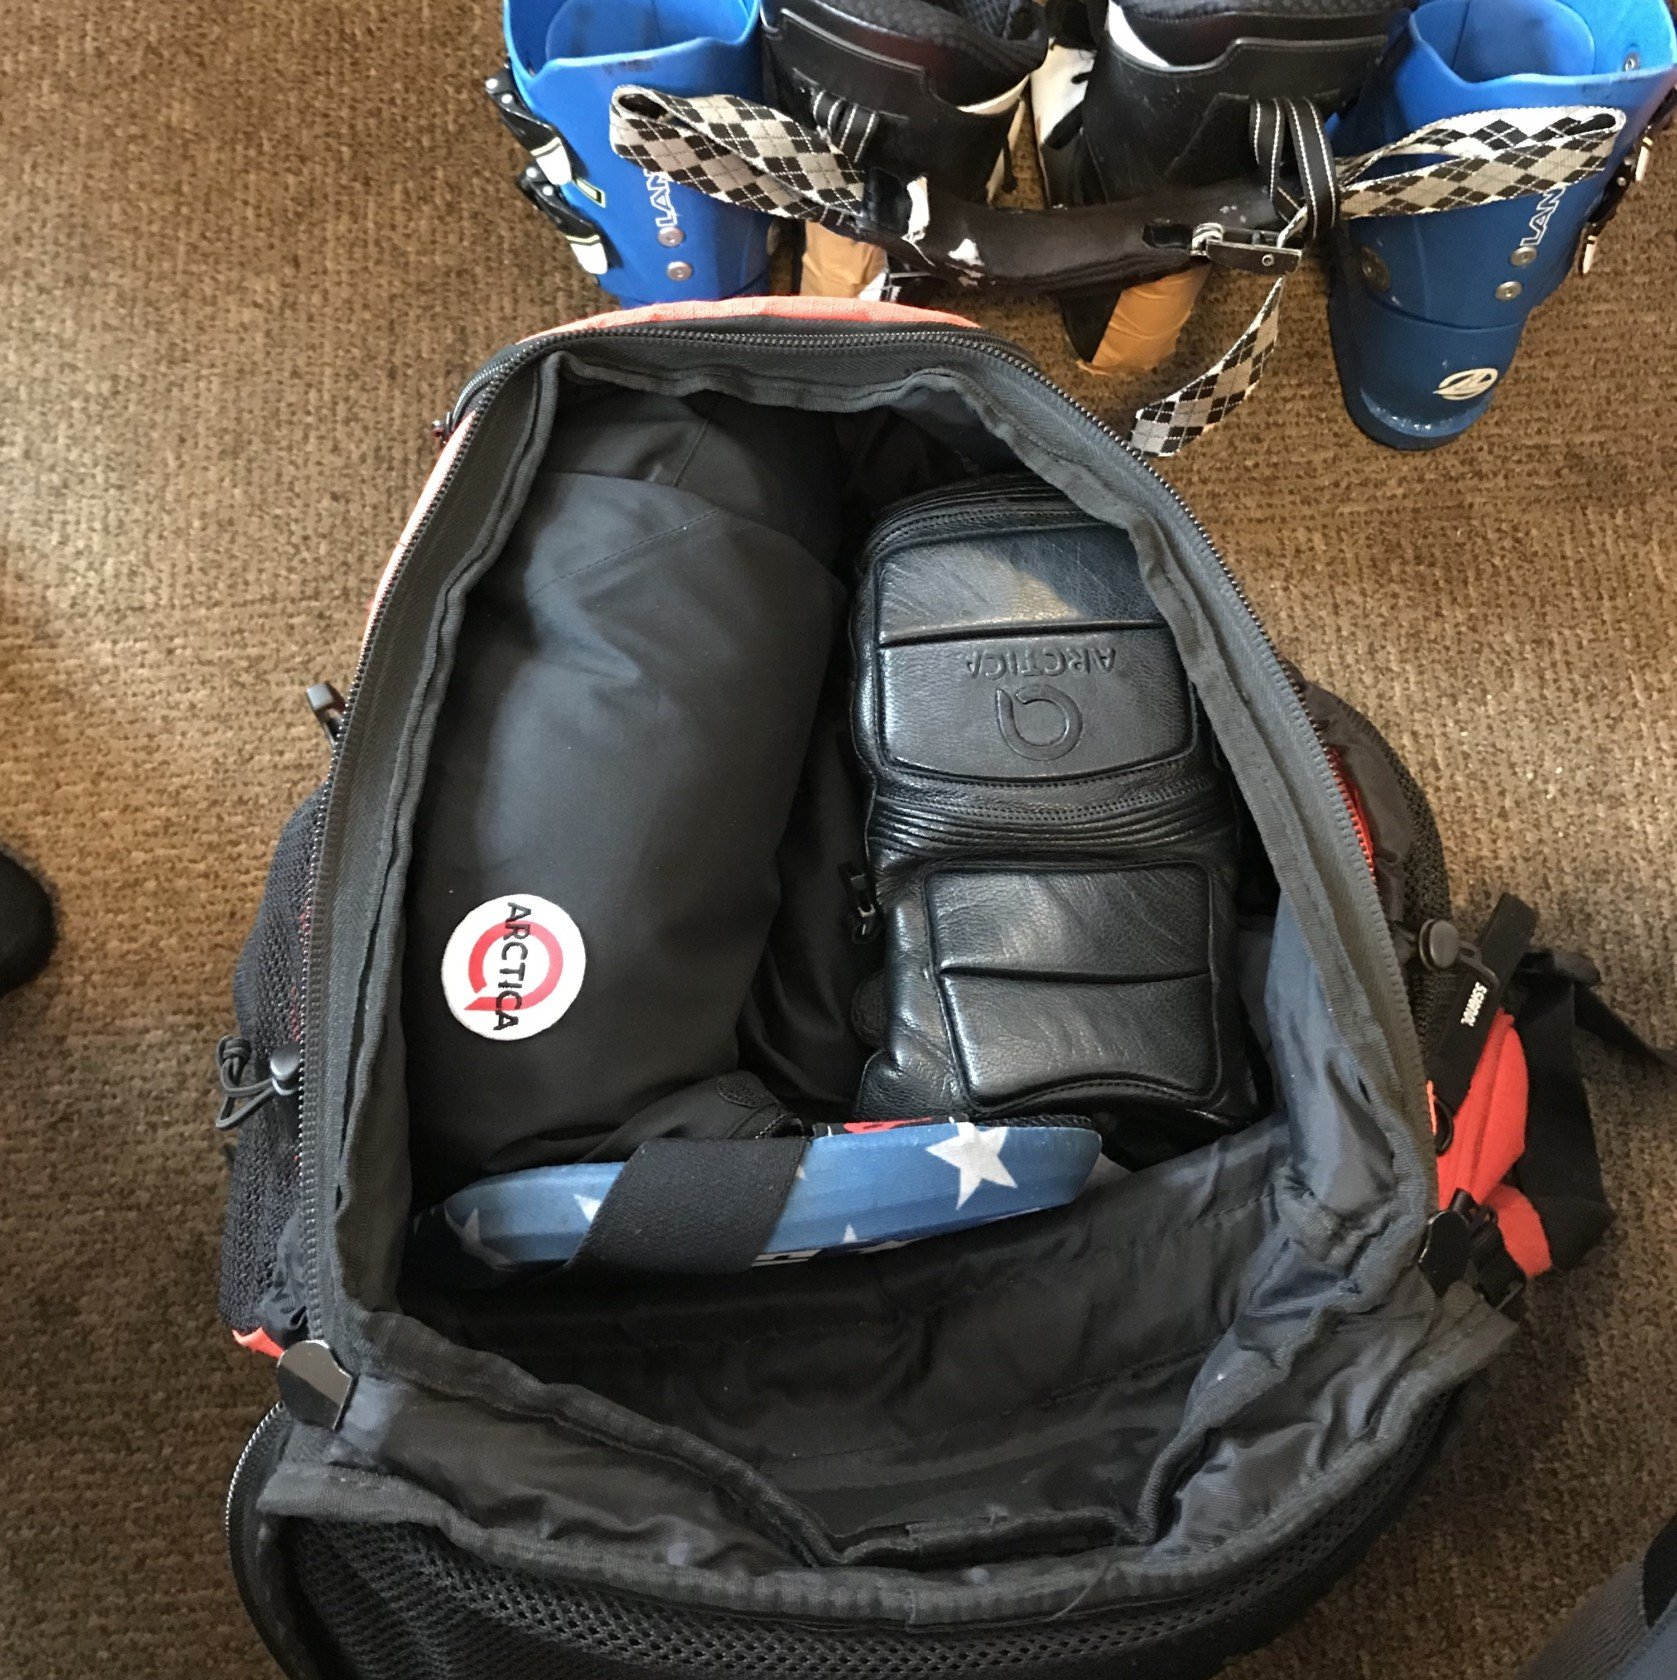 Ski racer's gear bag filled with Arctica gear.